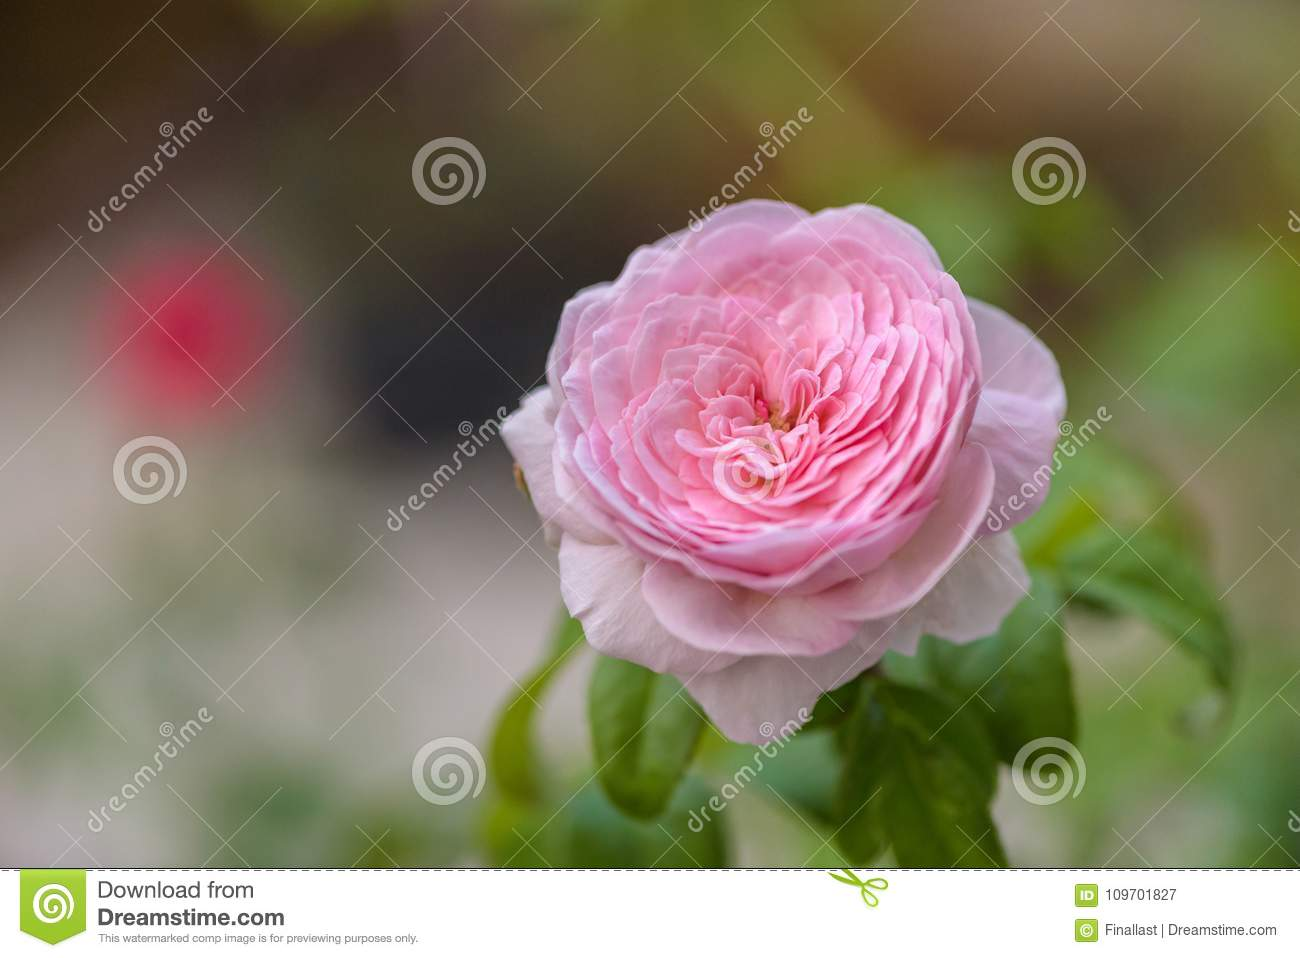 Mon Coeur Pink Japanese Rose Stock Image Image Of Blossom Heart